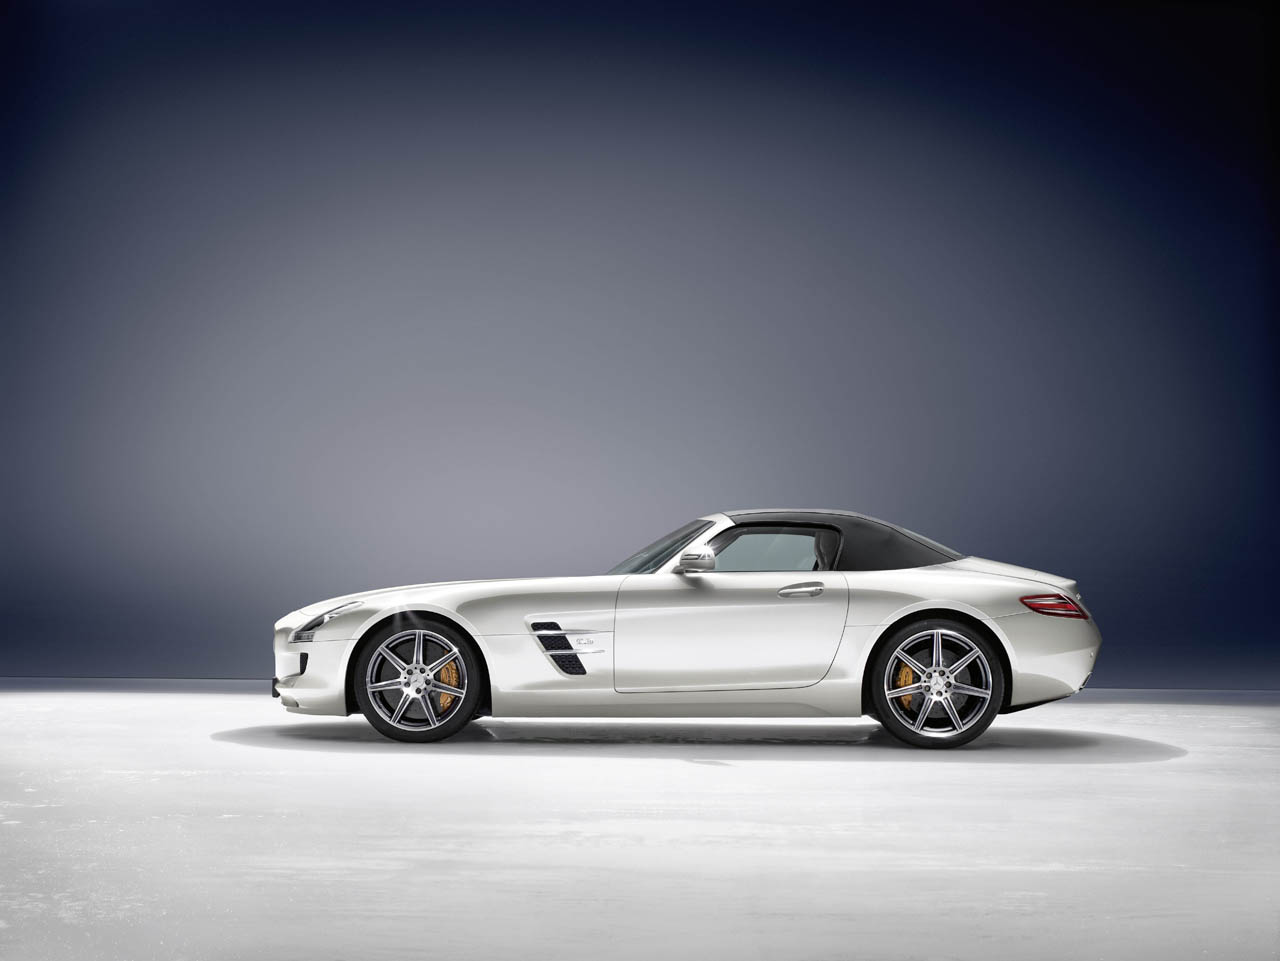 Mercedes benz releases 2012 sls amg roadster for 2012 mercedes benz sls amg